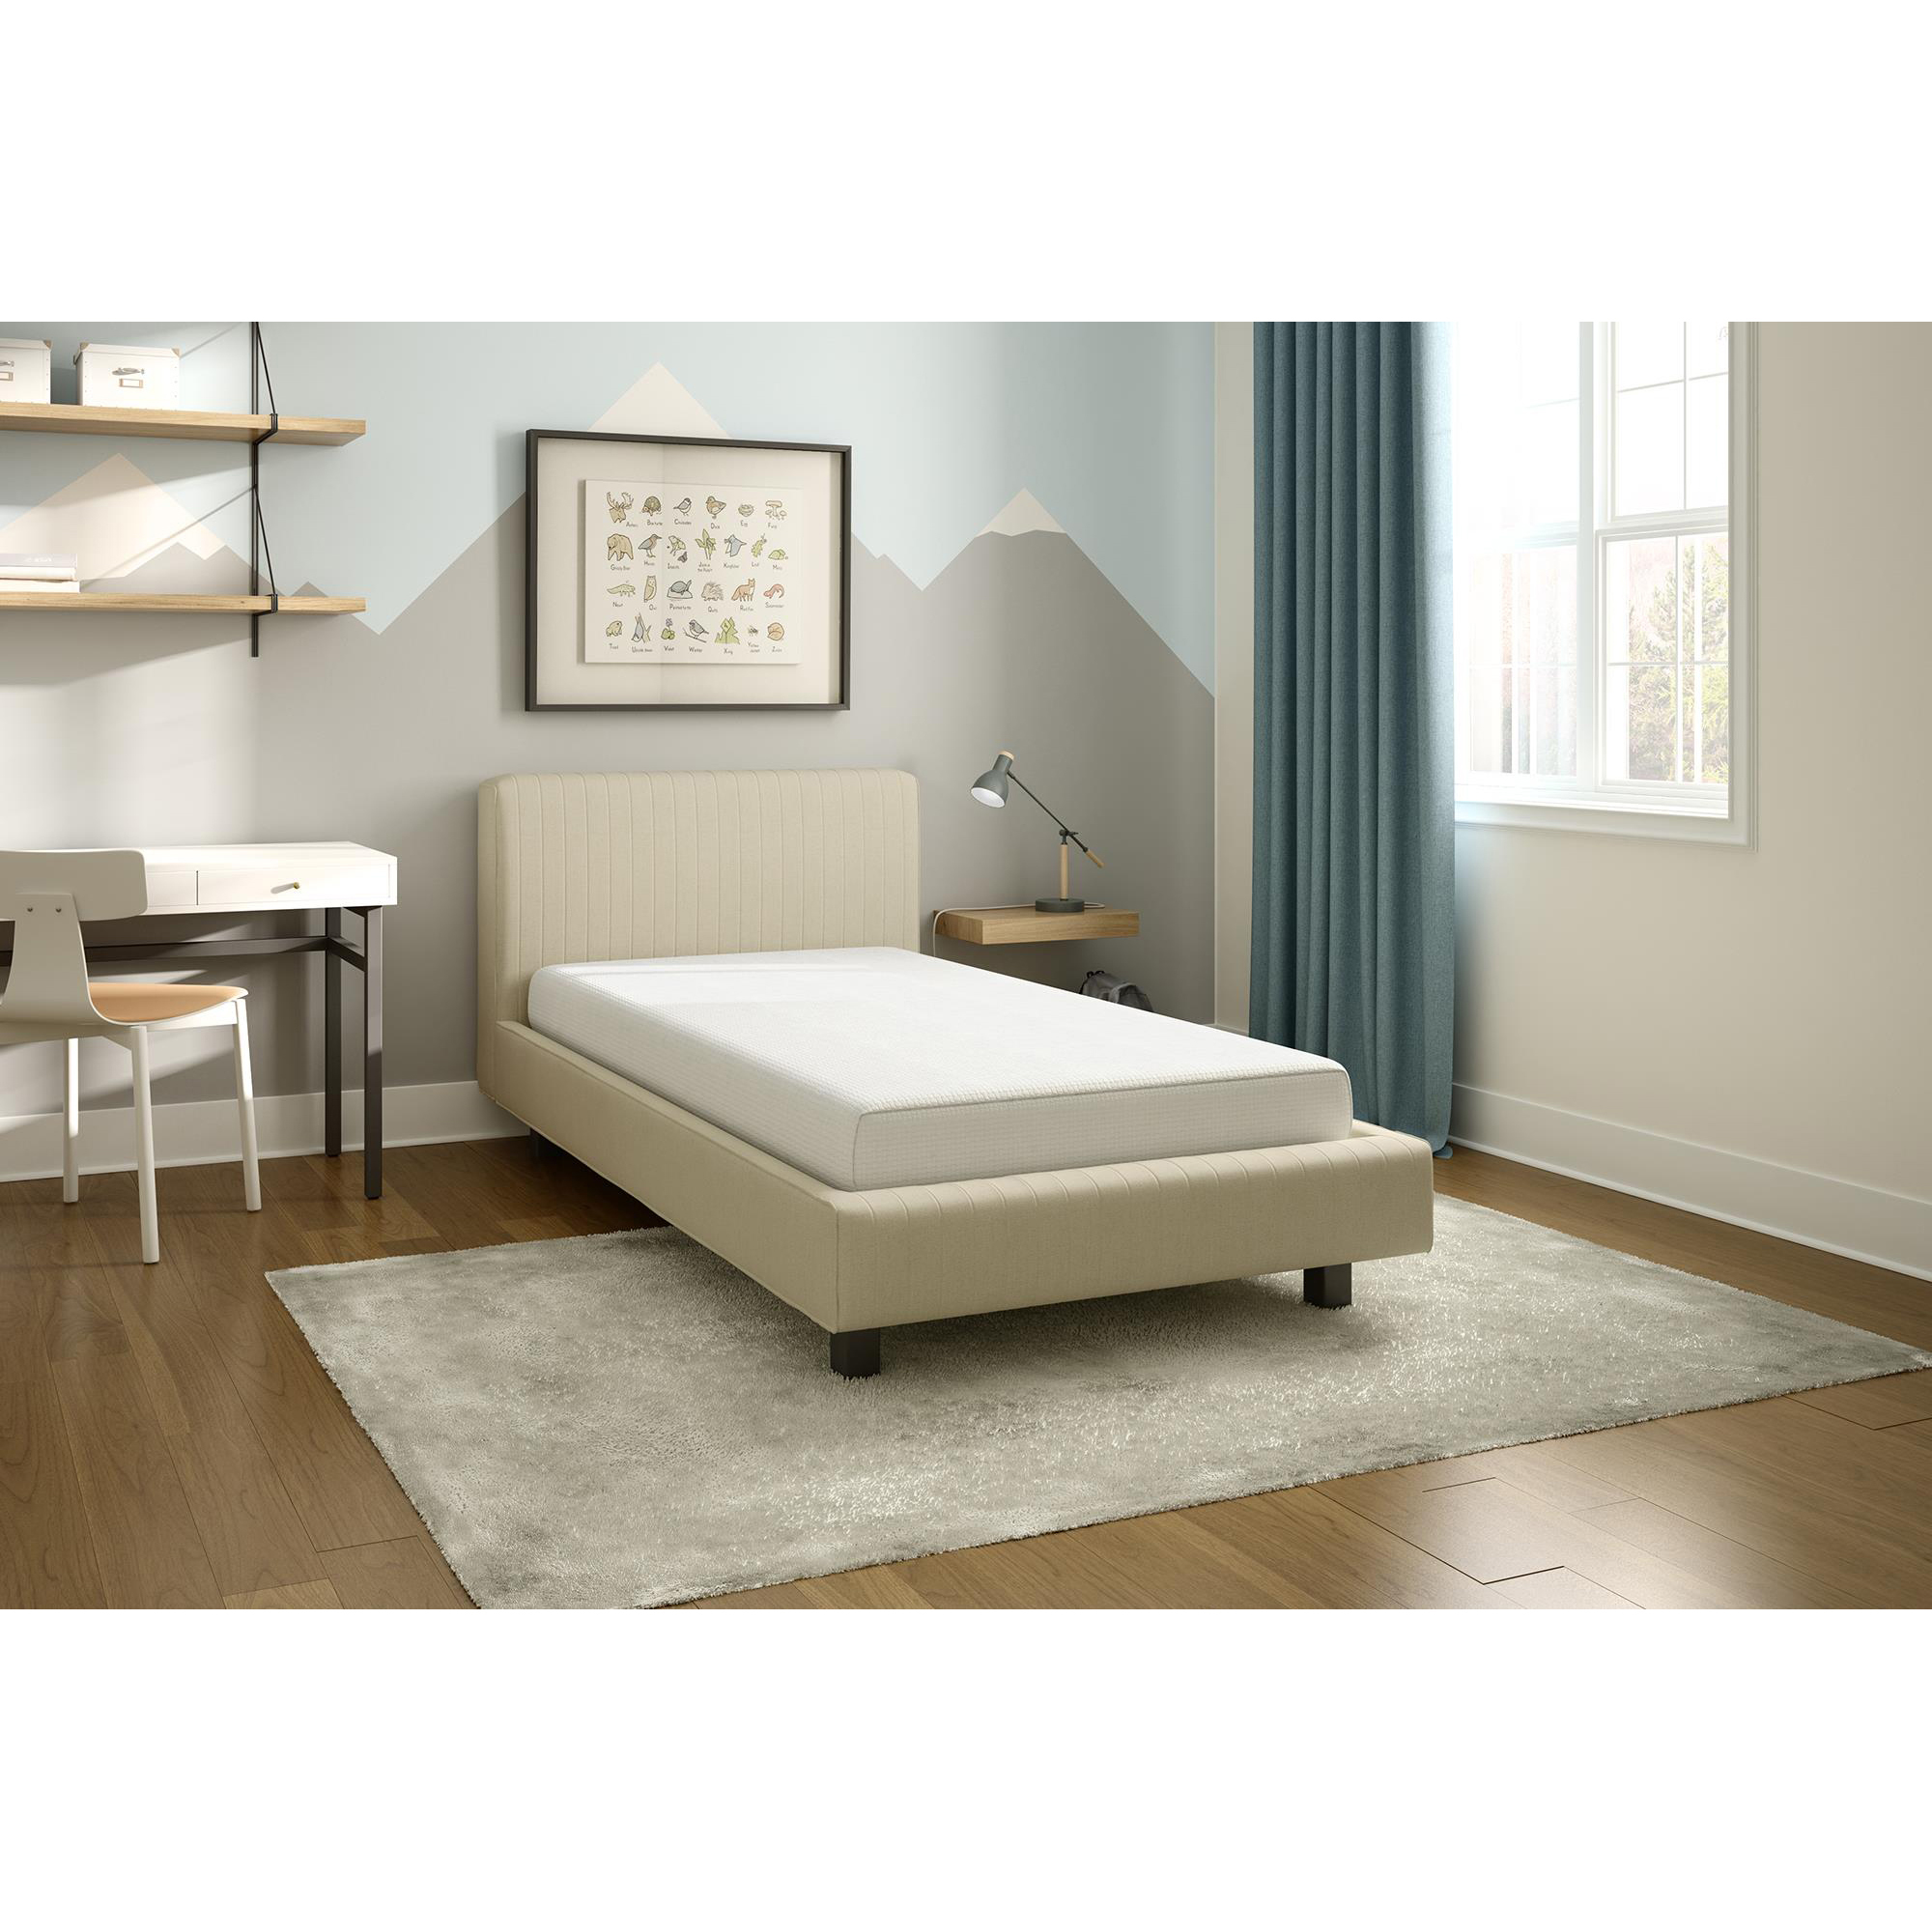 """Signature Sleep Gold Series CertiPUR-US 6"""" Memory Foam Mattress, Multiple sizes by Dorel Home Products"""